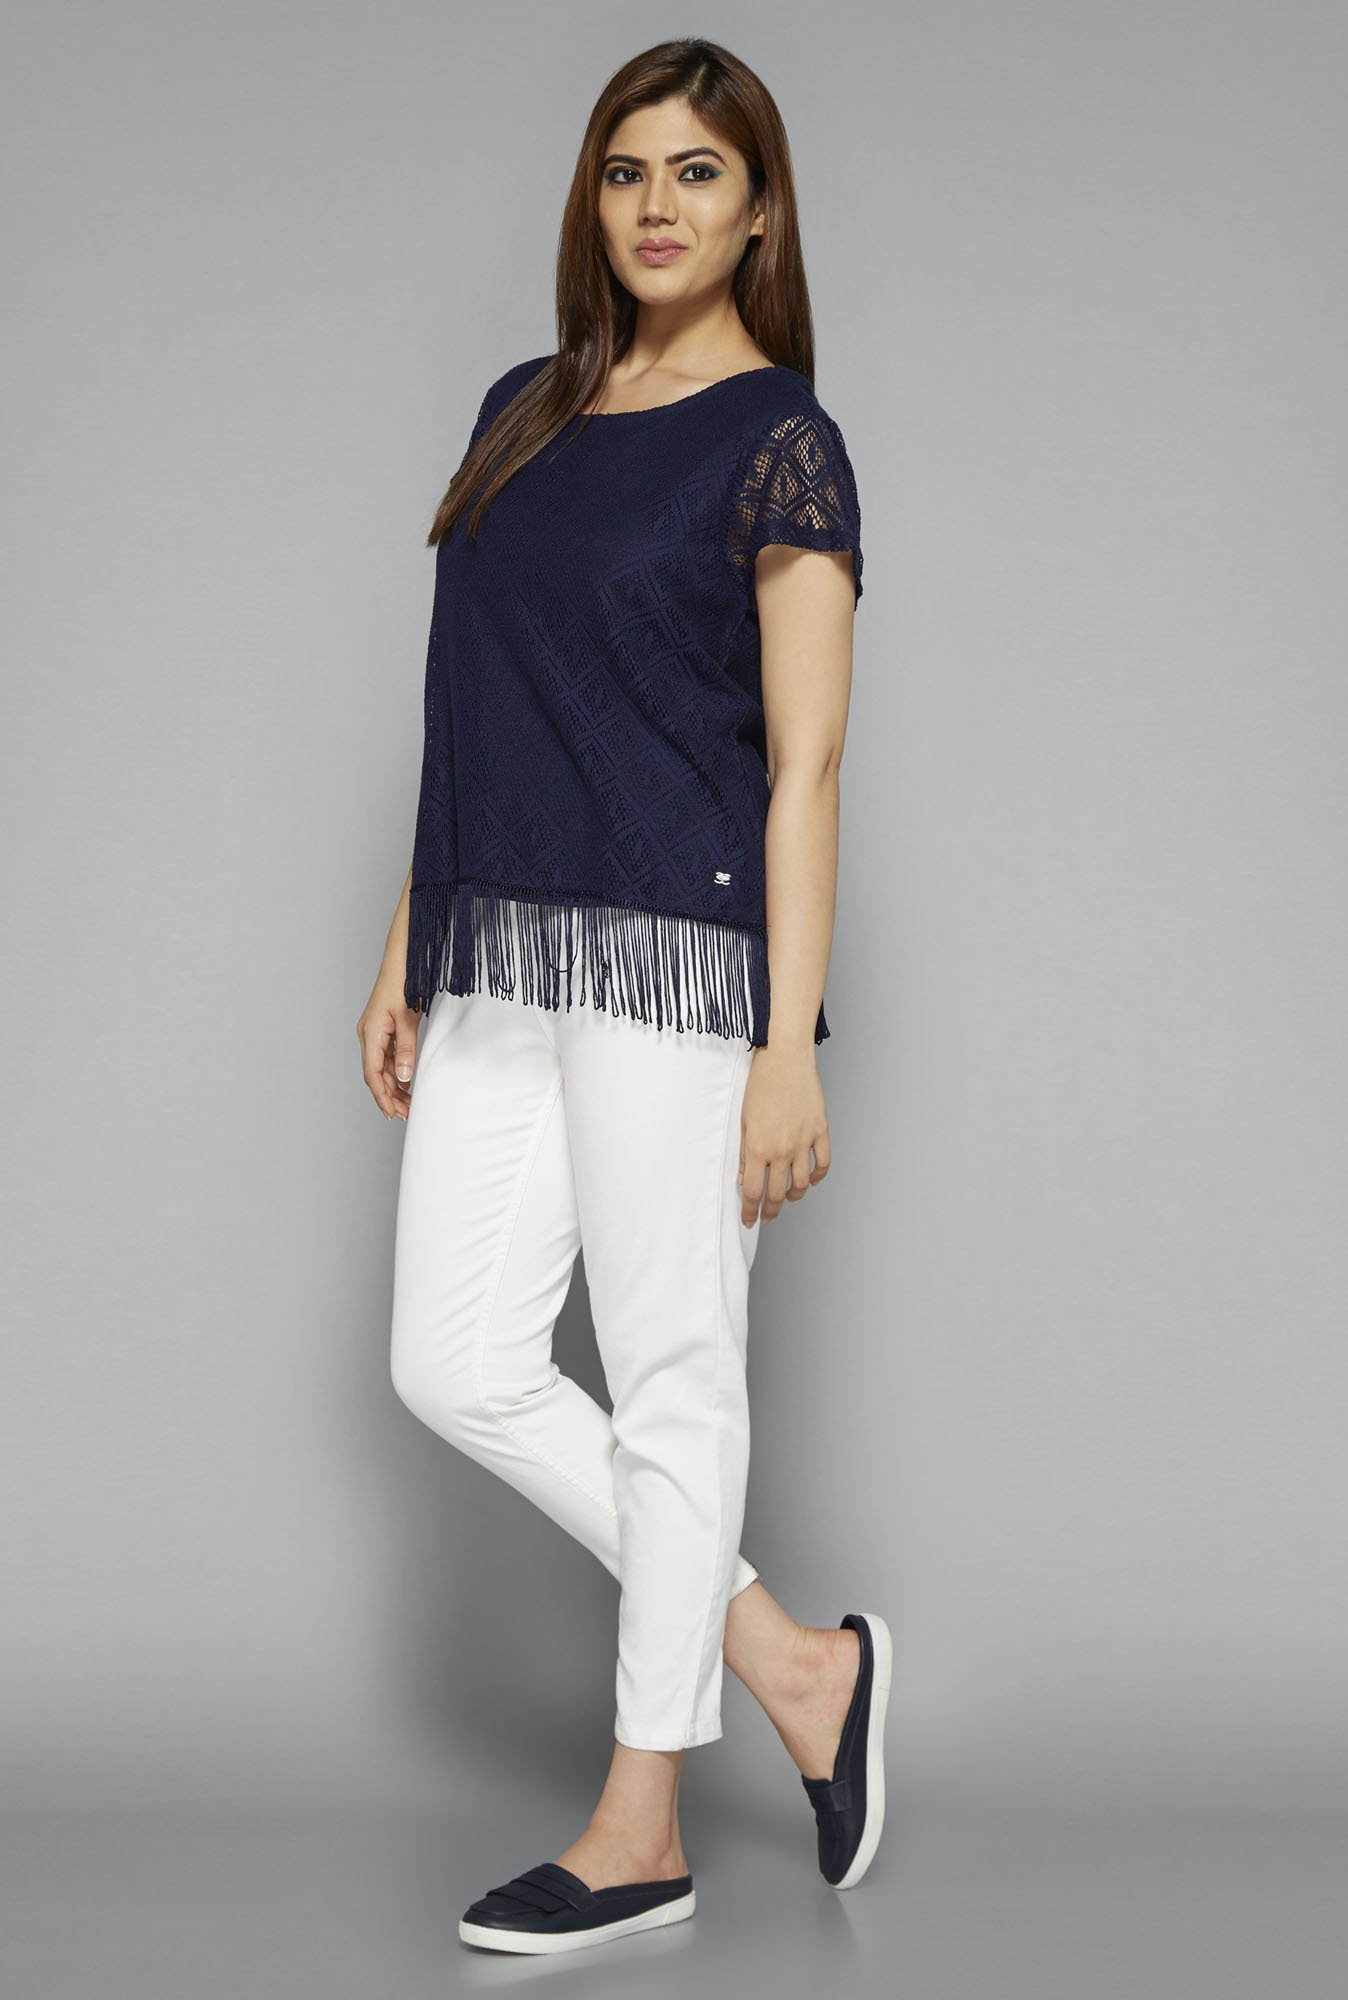 Sassy Soda by Westside Navy Fringe Lace Blouse